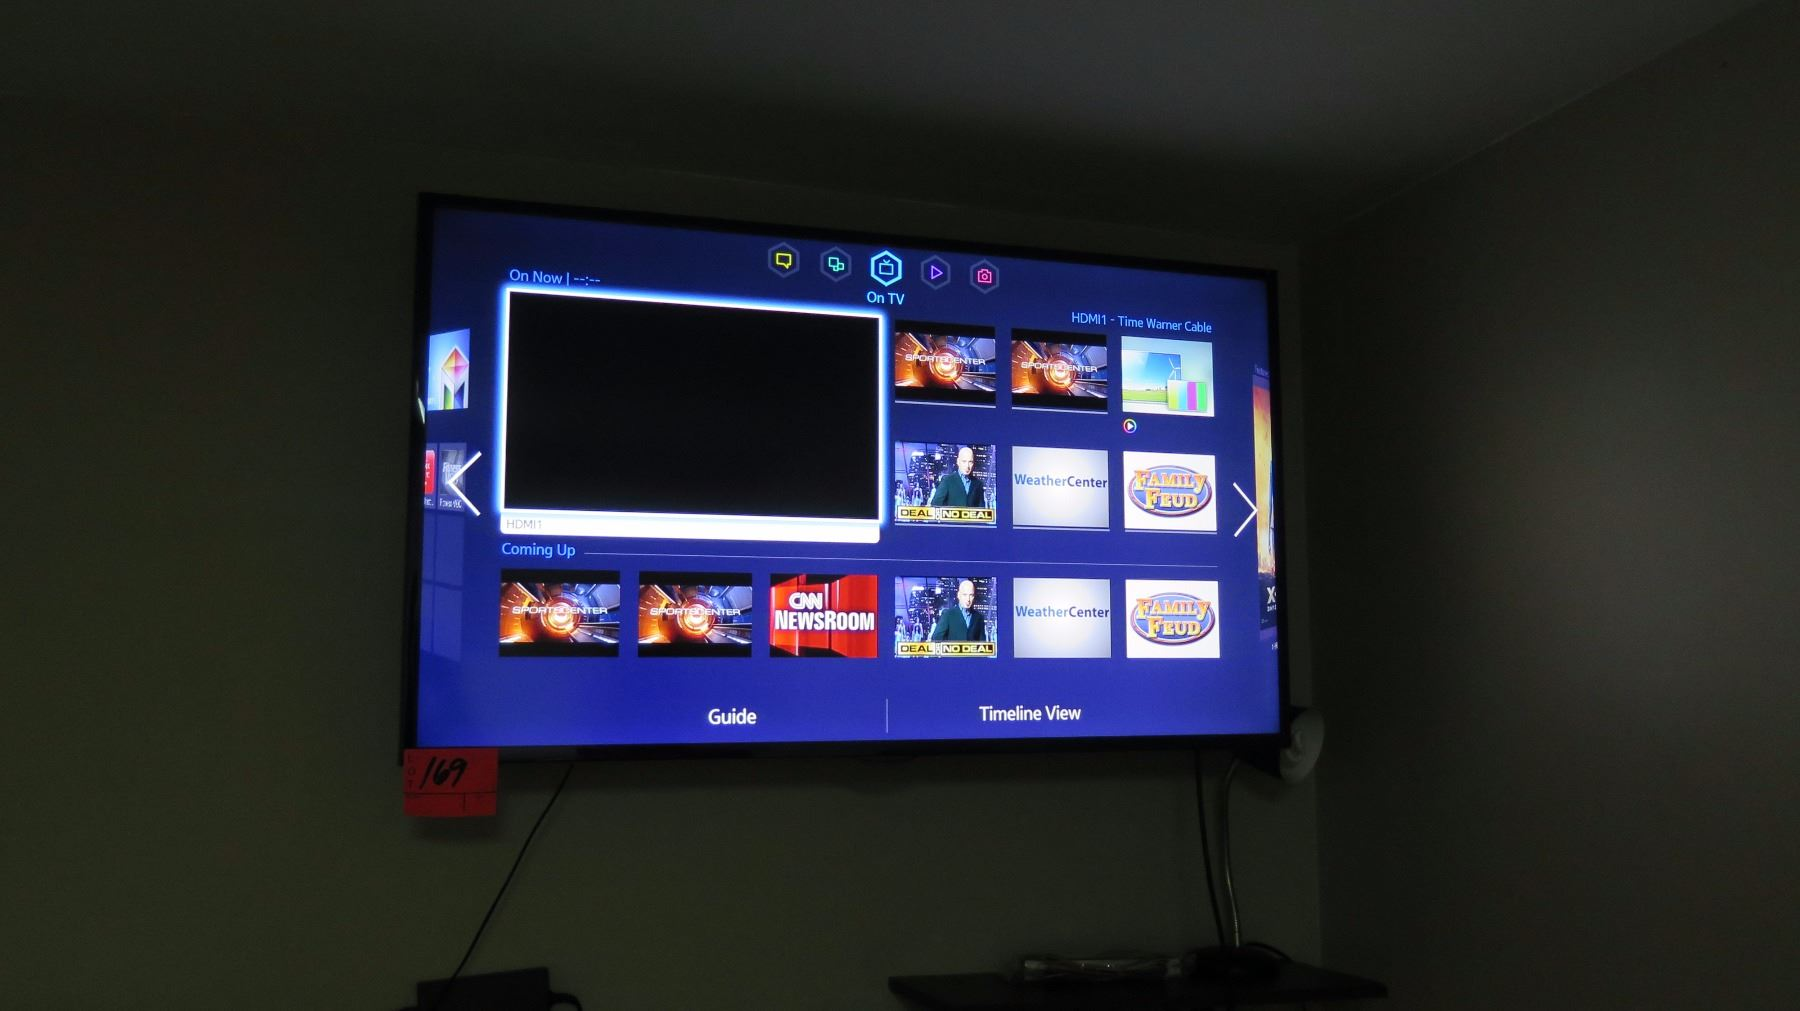 Samsung 50-Inch Wall-Mount LED/LCD Television (model